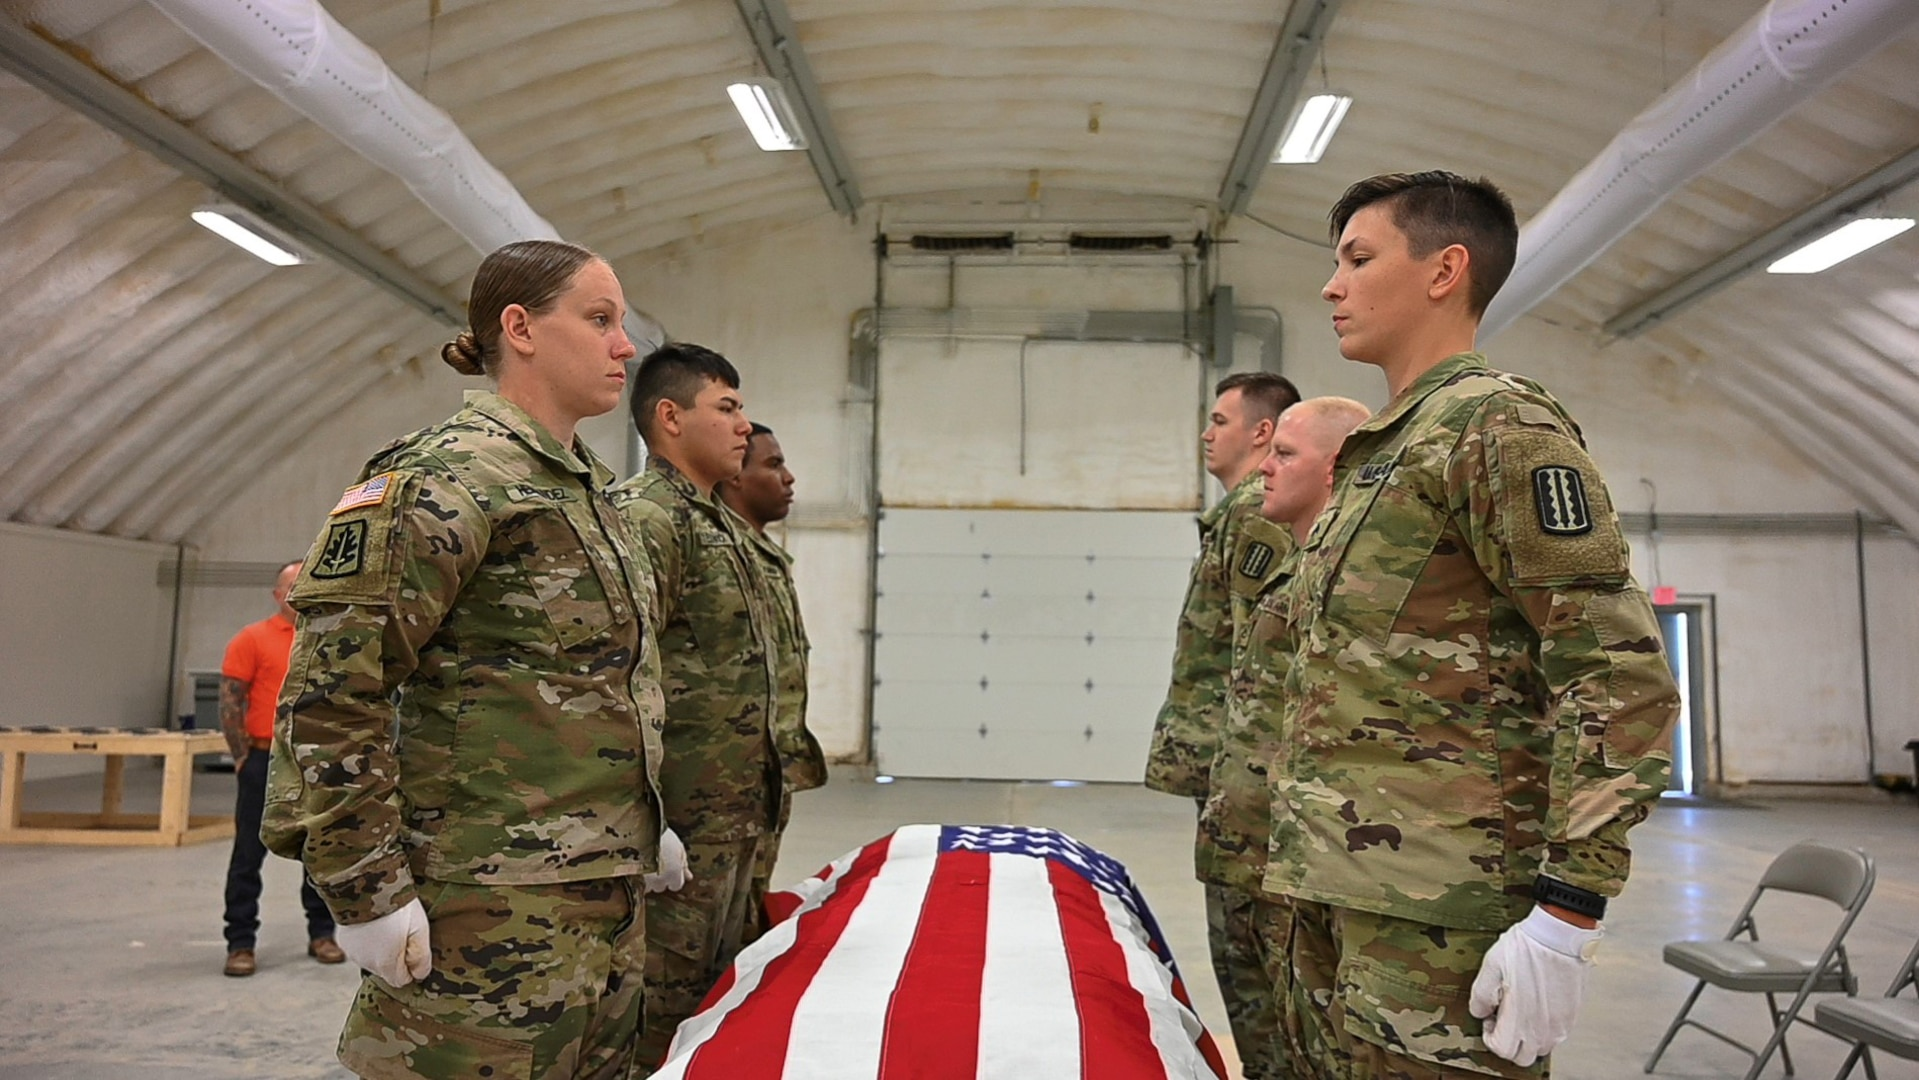 Virginia National Guard Soldiers participate in Level 1 Funeral Honors training June 25, 2021, at the State Military Reservation in Virginia Beach, Va. The course prepares Soldiers to conduct professional military funeral honors in accordance with service tradition.